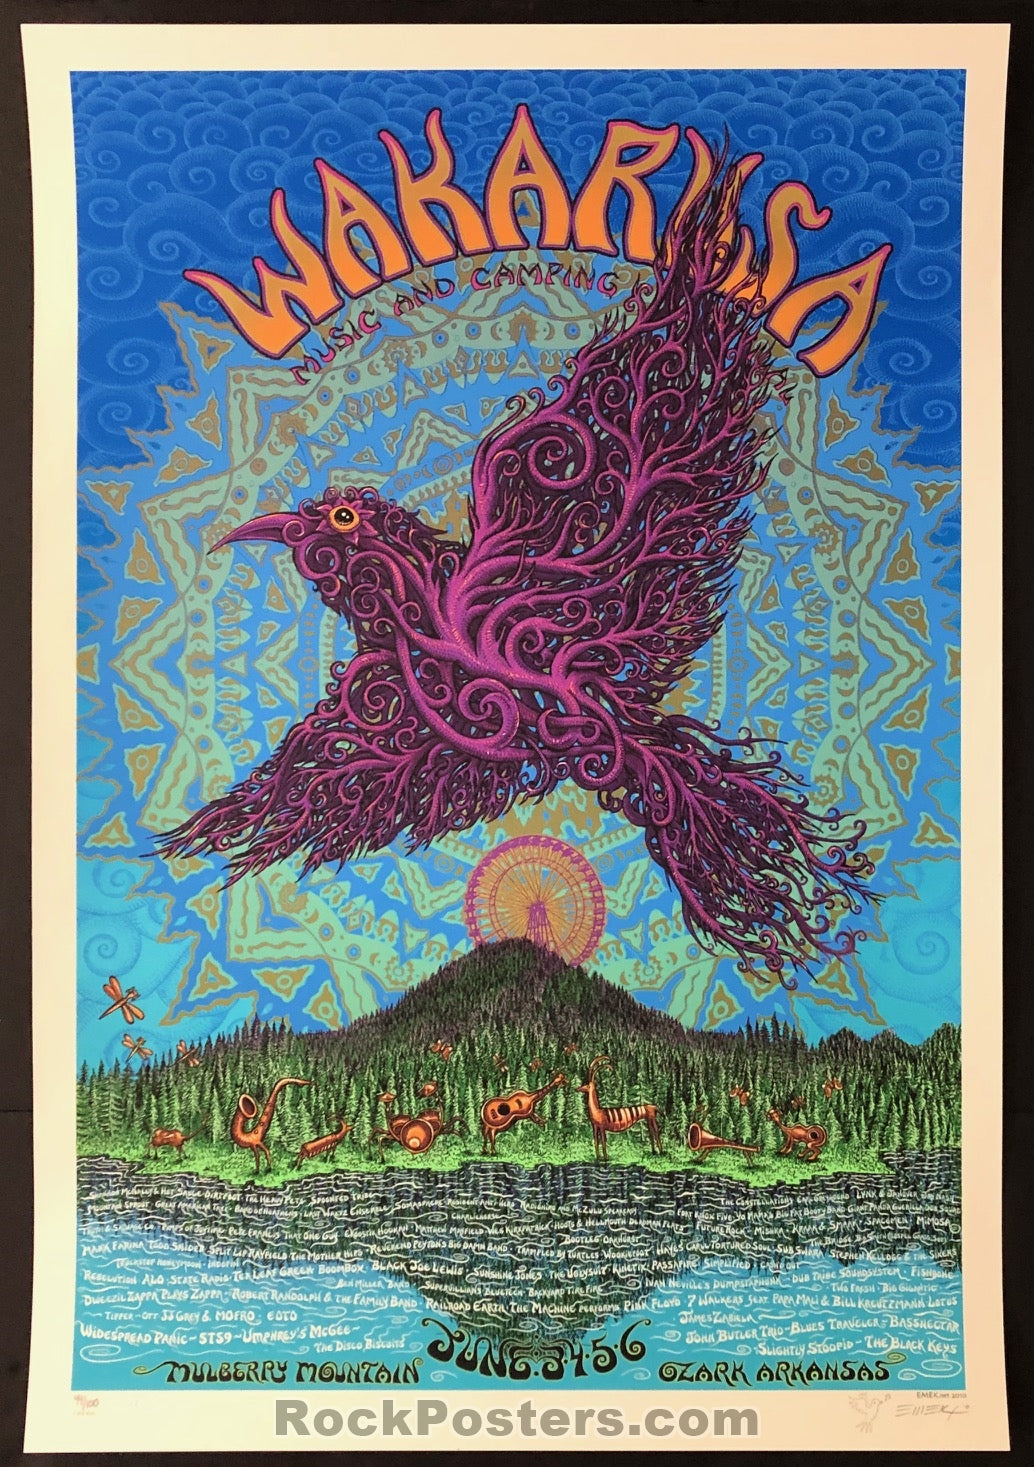 AUCTION - Emek Wakarusa  -  '10 Widespread Panic Silkscreen Poster Cream Edition of 100 - Condition -  Mint